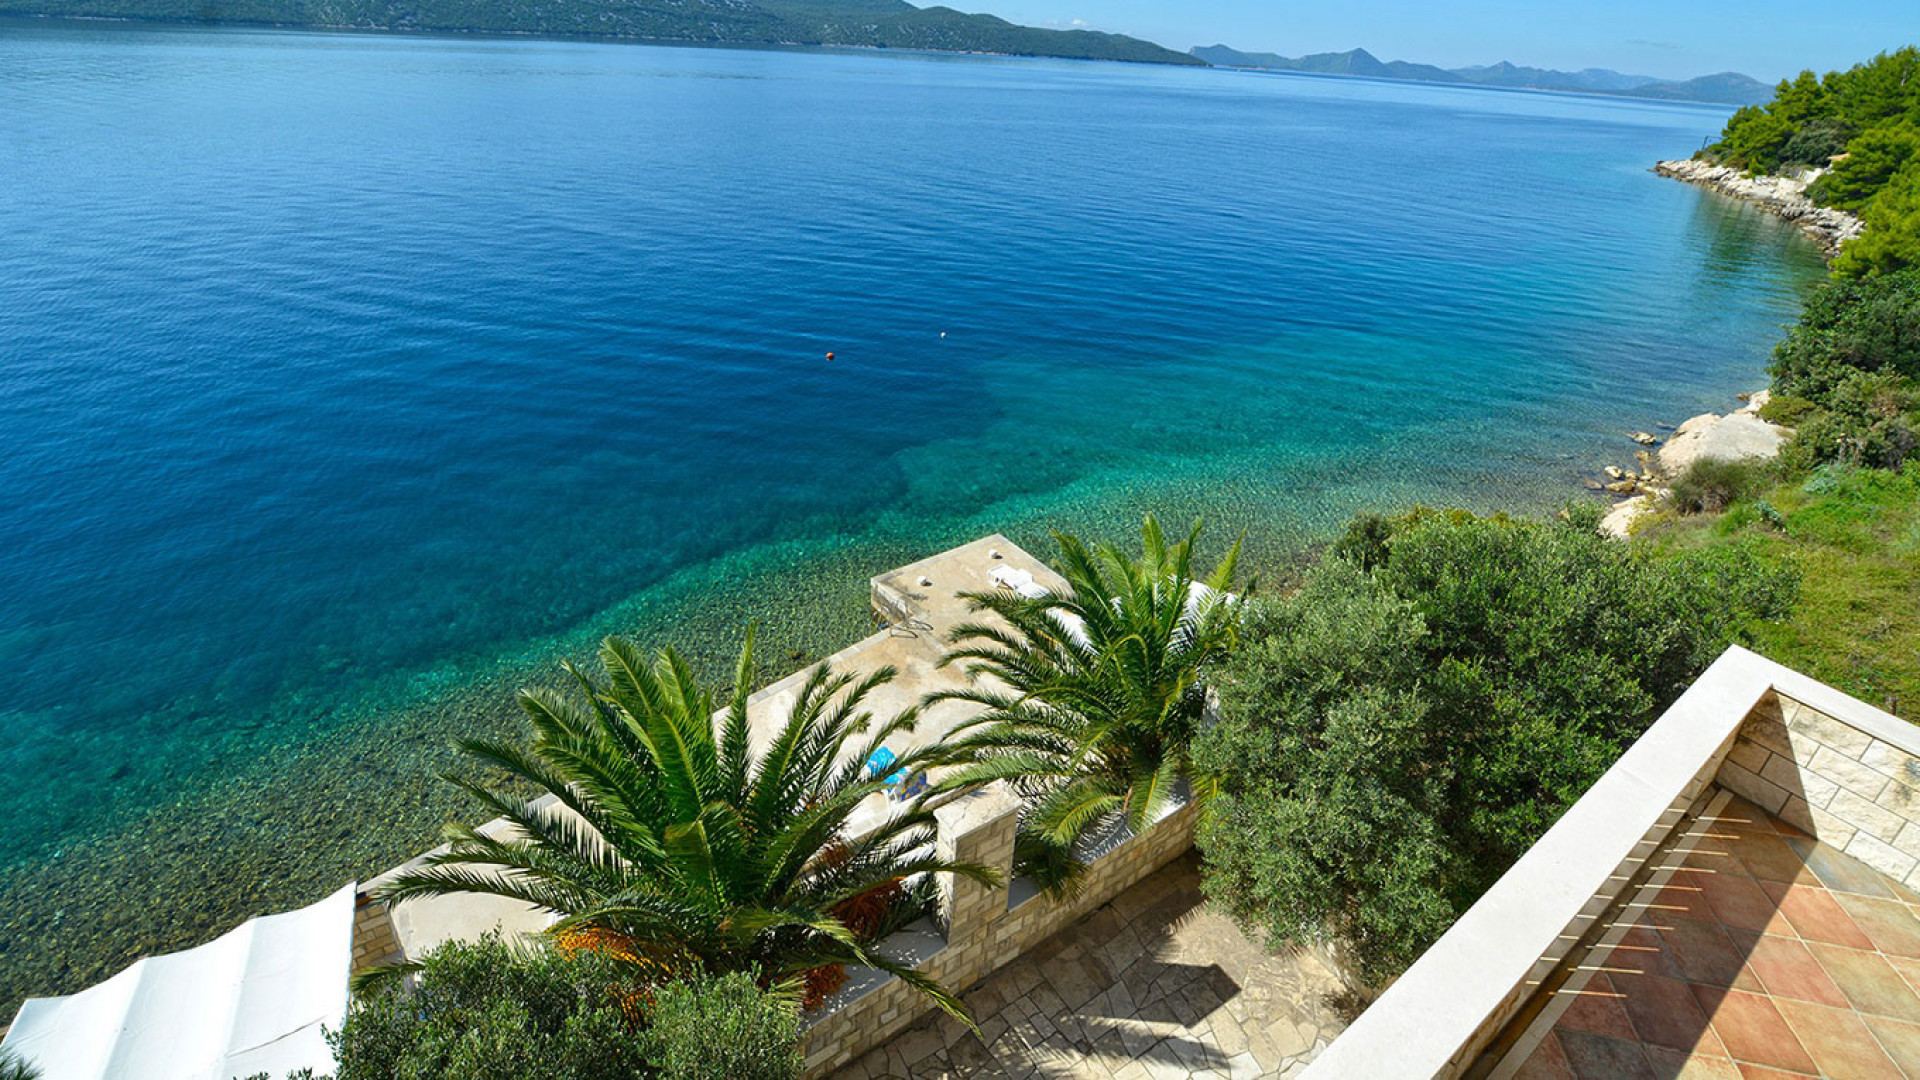 For a family holiday, Villa Ratac is hard to beat, with a water-front position, sea-views, beautiful Mediterranean gardens and beach-front deck and pavillions